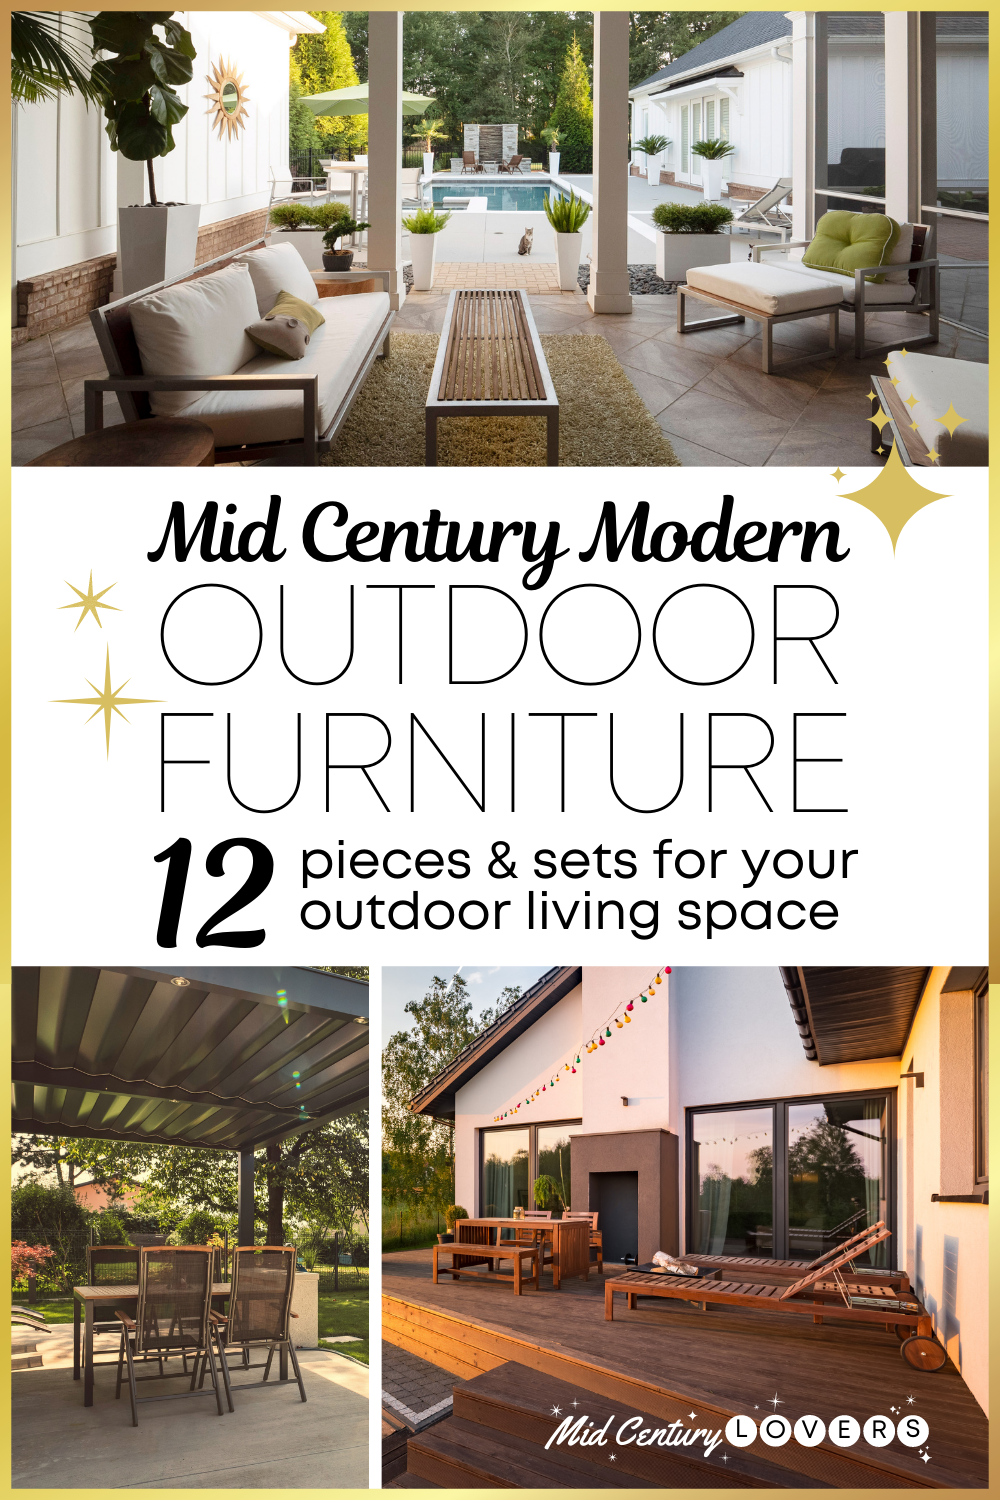 Mid Century Modern Outdoor Furniture: 12 Must see pieces for your outdoor living space.